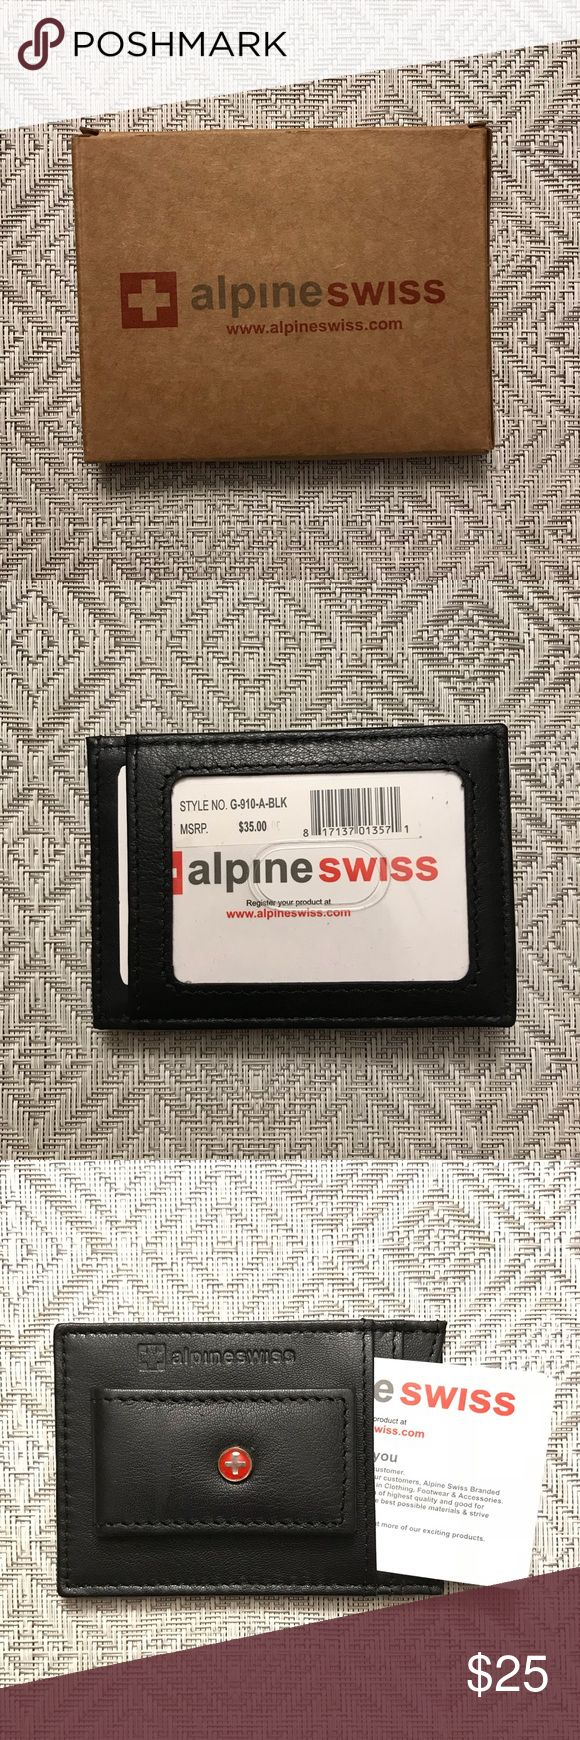 Men's Wallet / Money Clip / Card Holder Brand new never used alpine Swiss card holder in soft, black leather. Money clip on front with cross logo and slots for three cards. Clear ID slot on back. Alpine Swiss Accessories Key & Card Holders